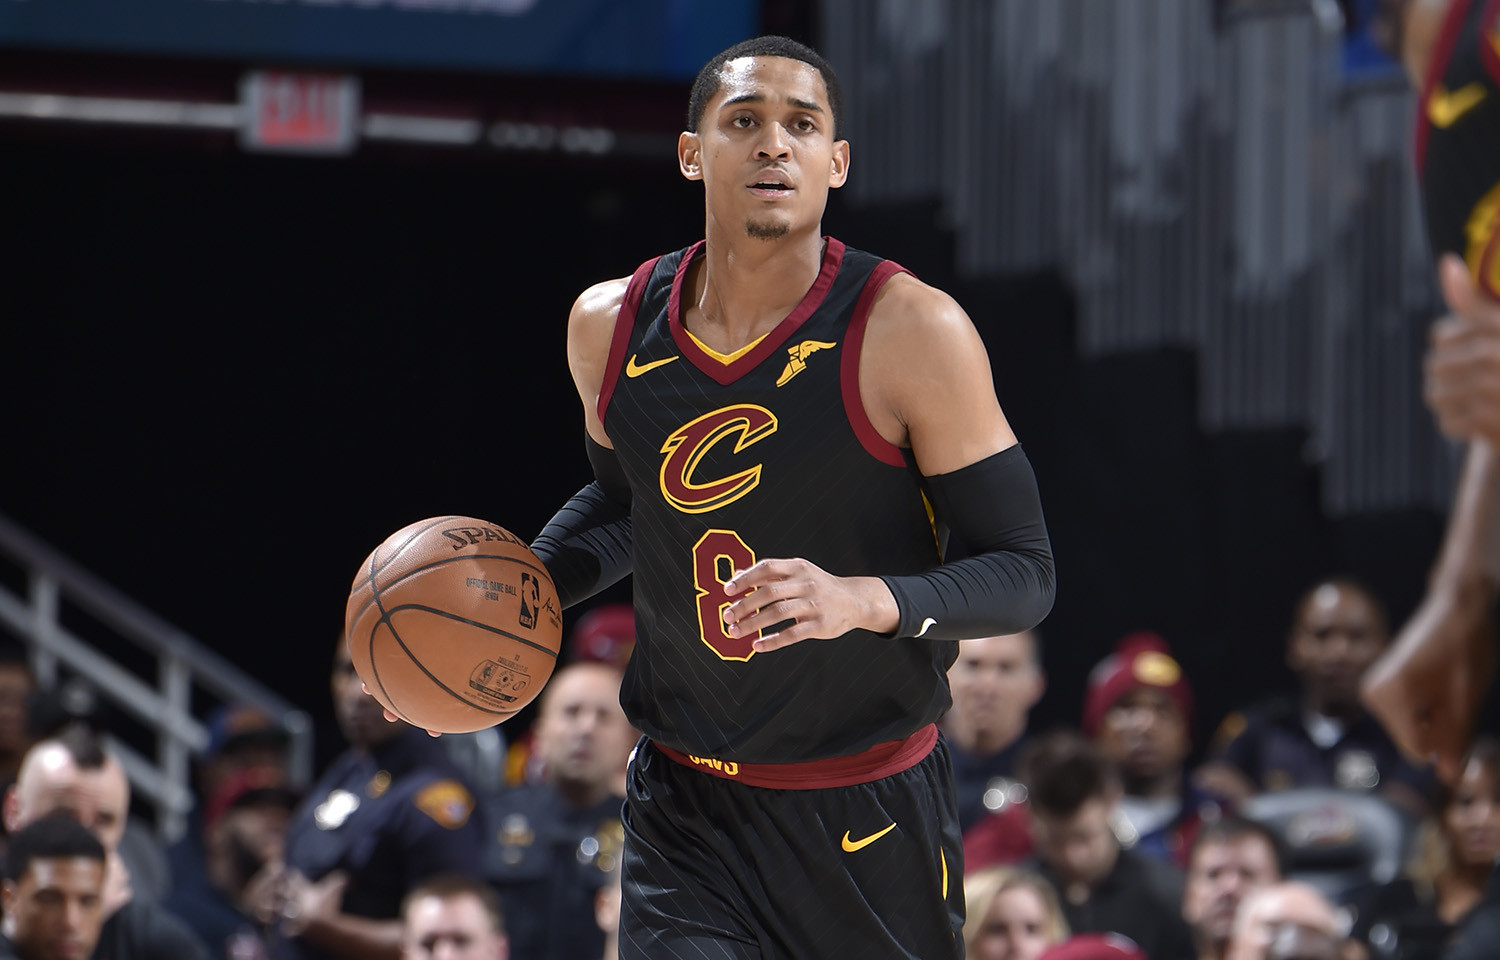 NBA refuse to allow Cleveland Cavaliers guard play for Philippines at Asian Games